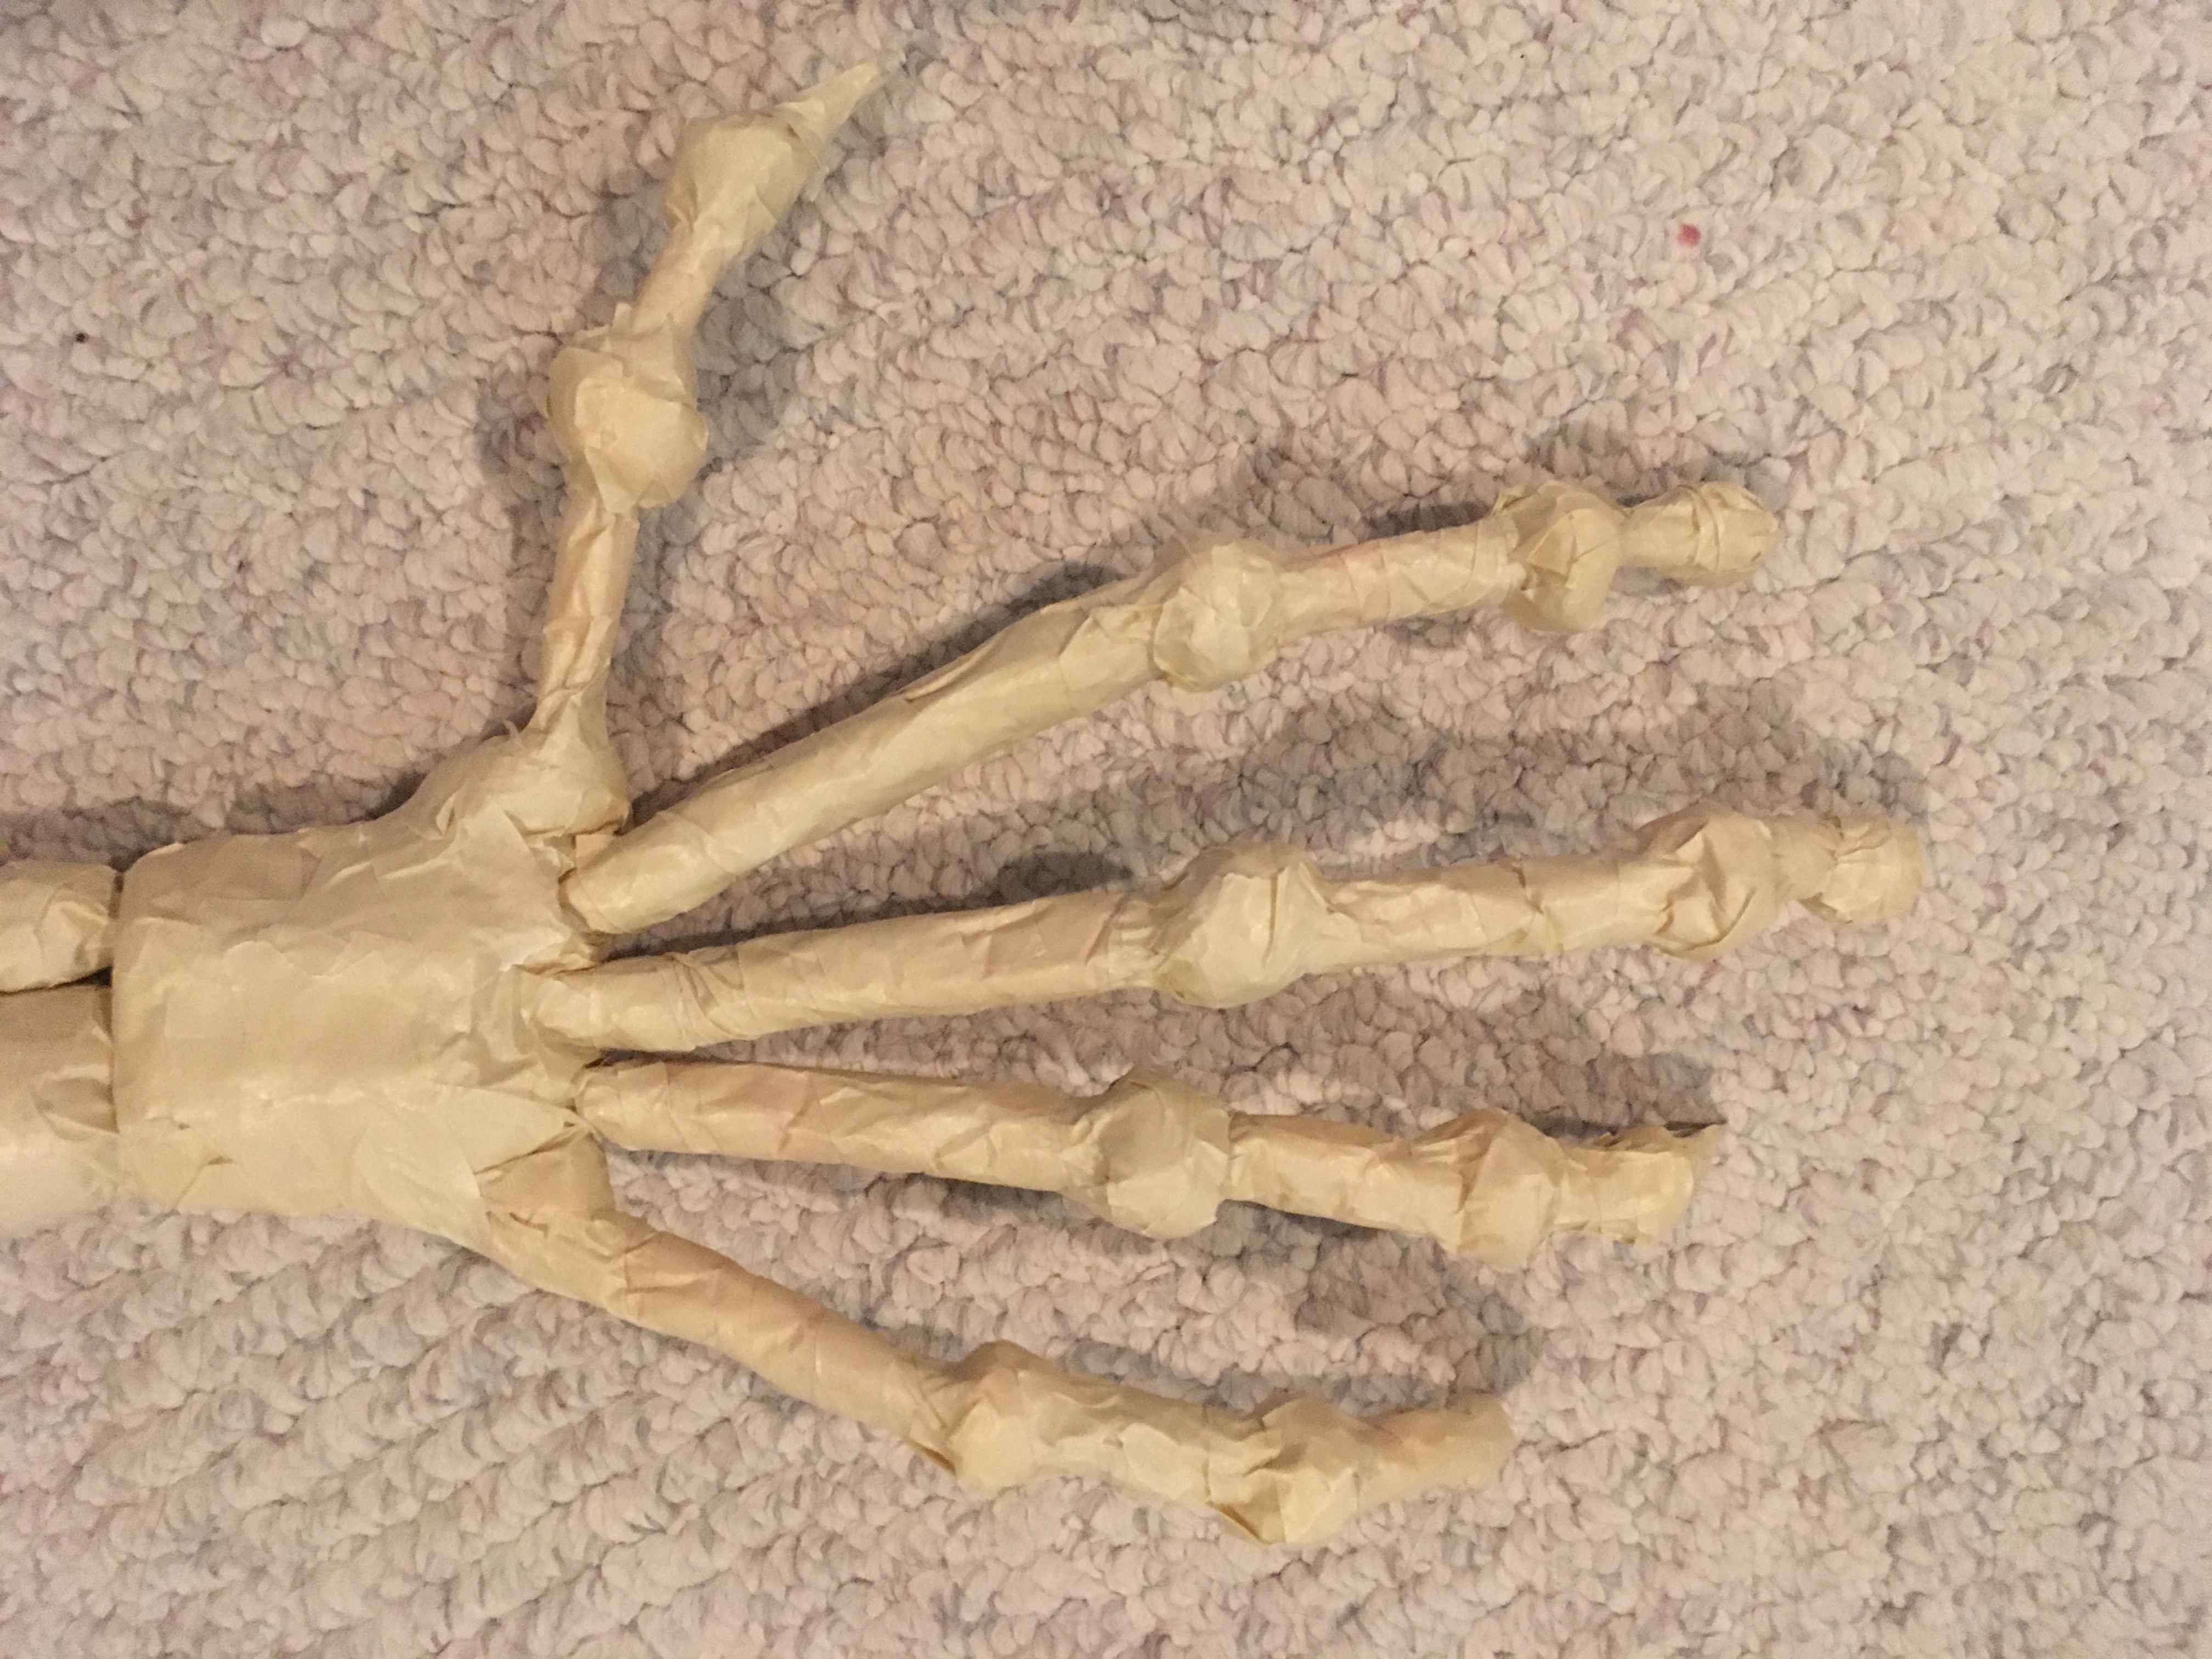 Picture of Gnarled Hands